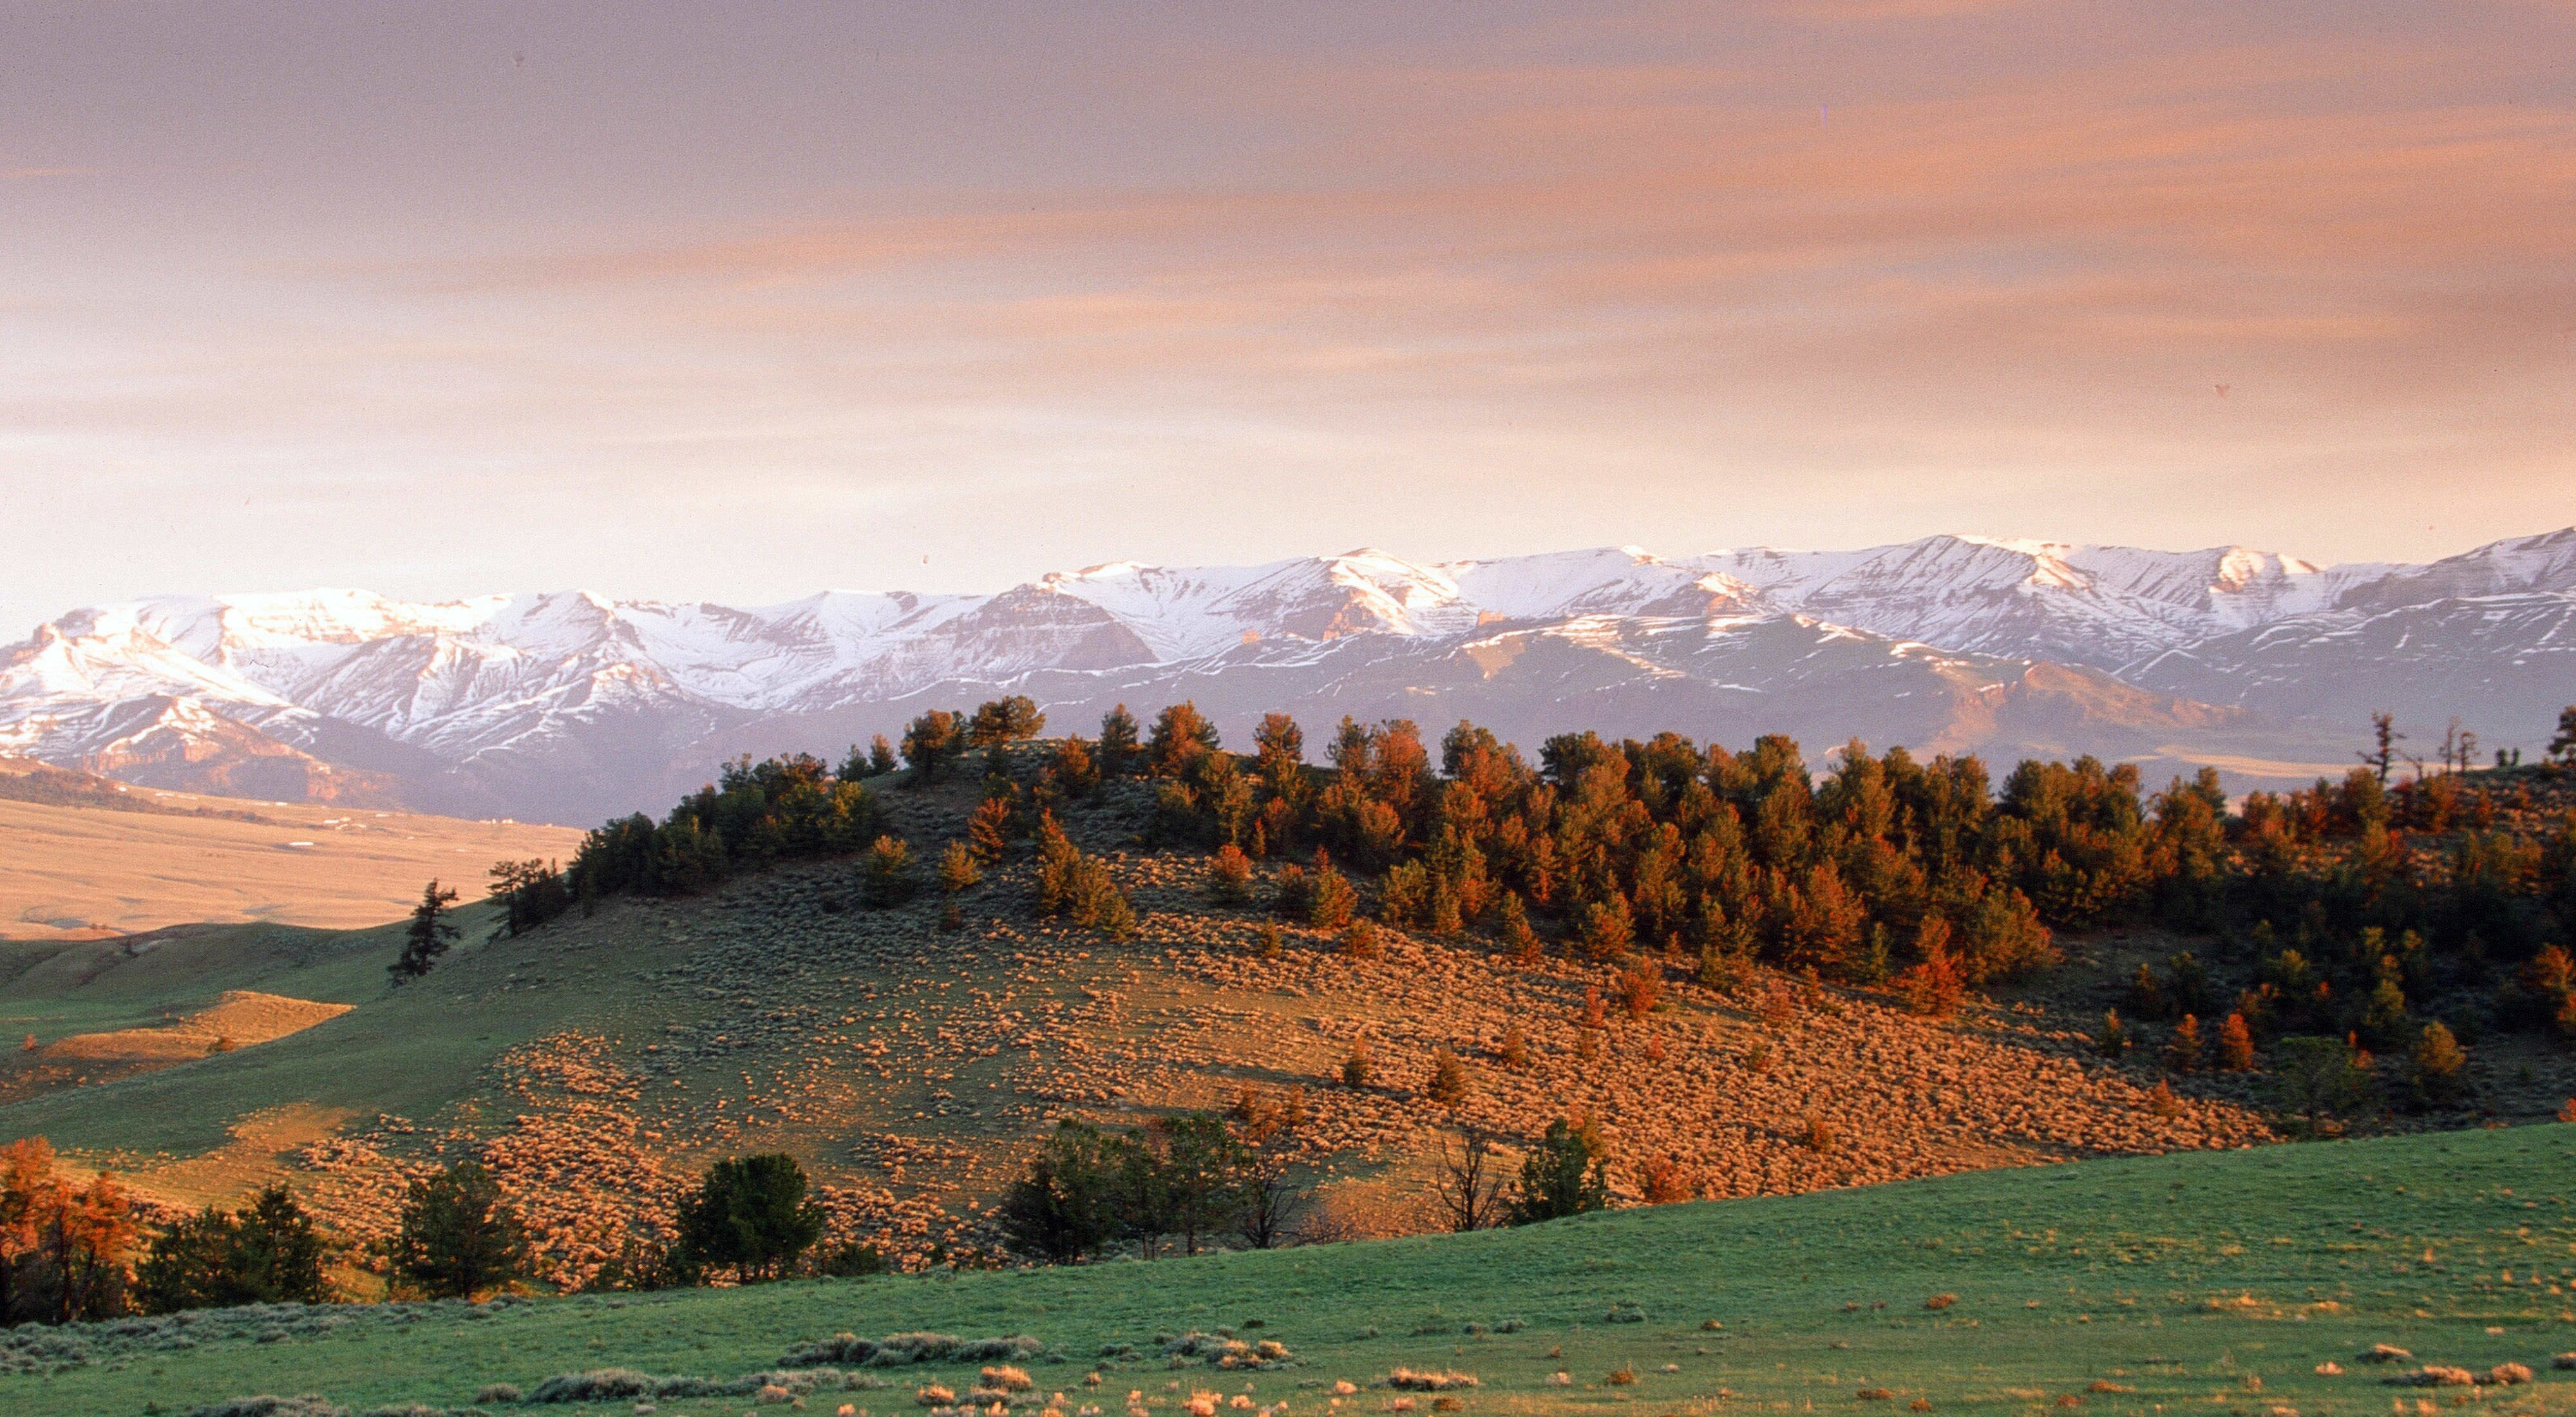 Early morning view of the mountains near Pitchfork Ranch.